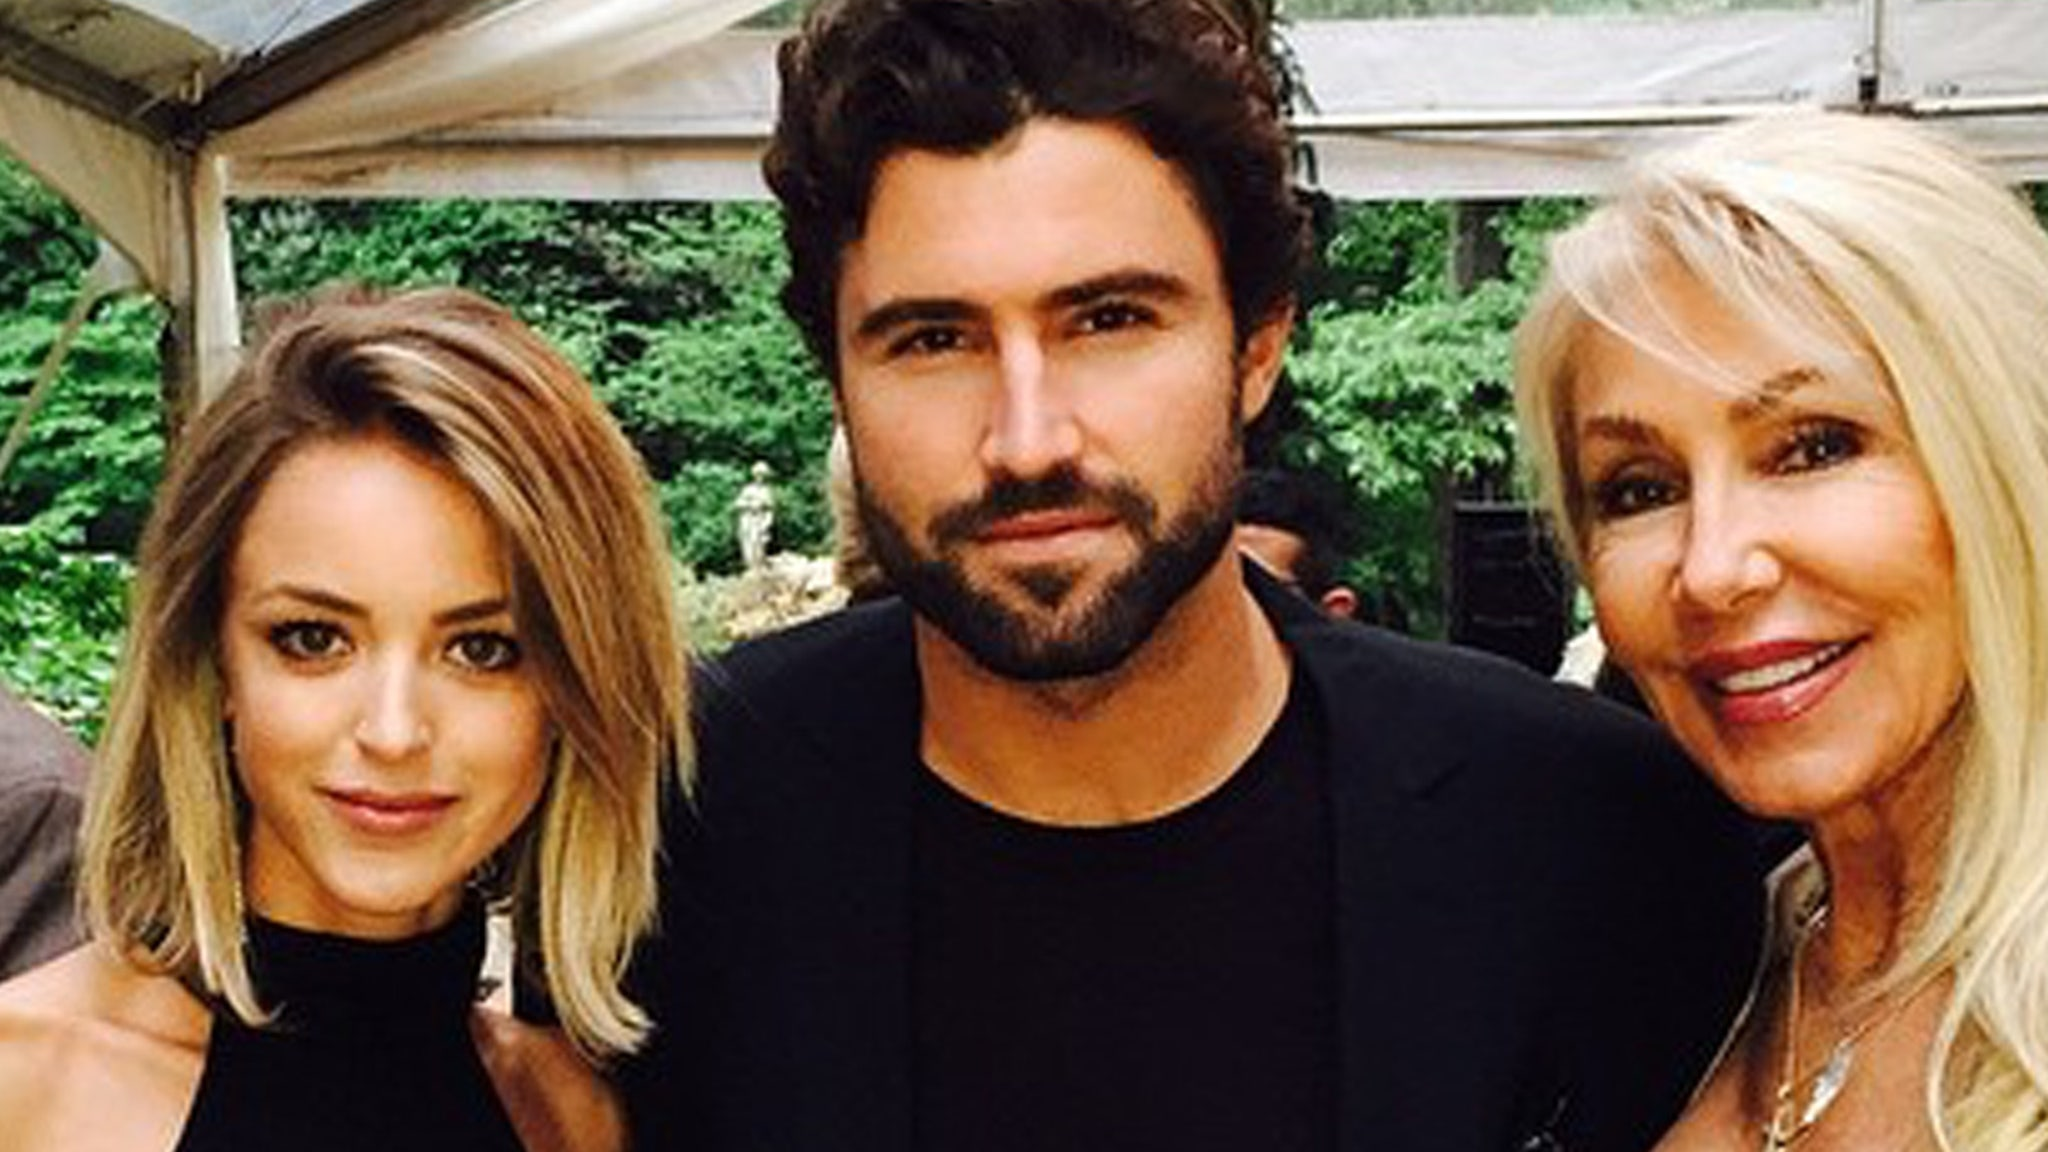 Brody Jenner Admits Getting Turned On by Naked Stepsister